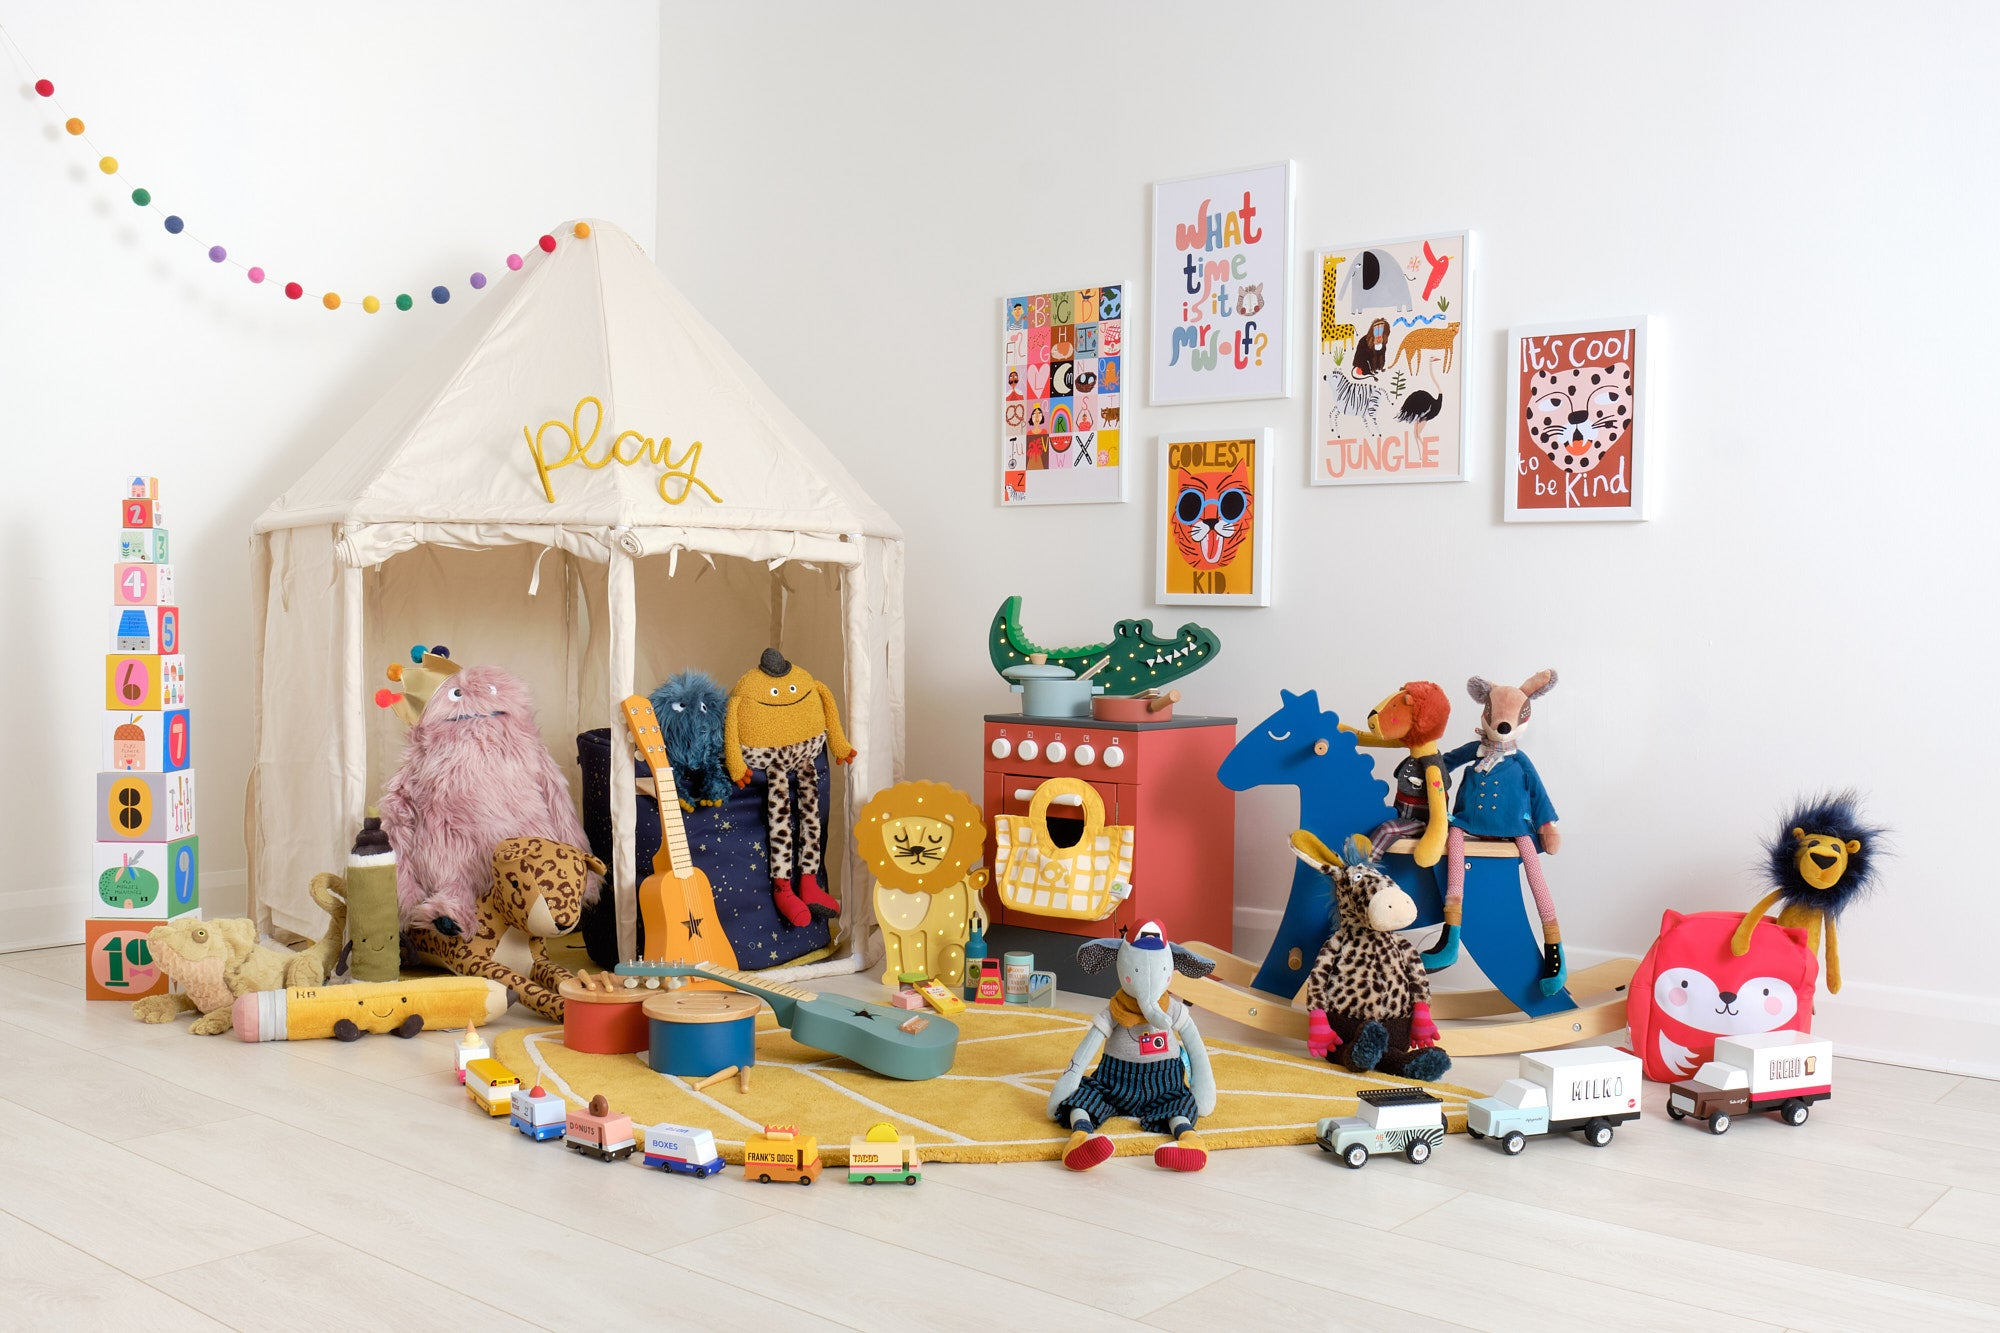 'Rock and Roll!' Children's Playroom, Toys and Accessories, styled by Bobby Rabbit.